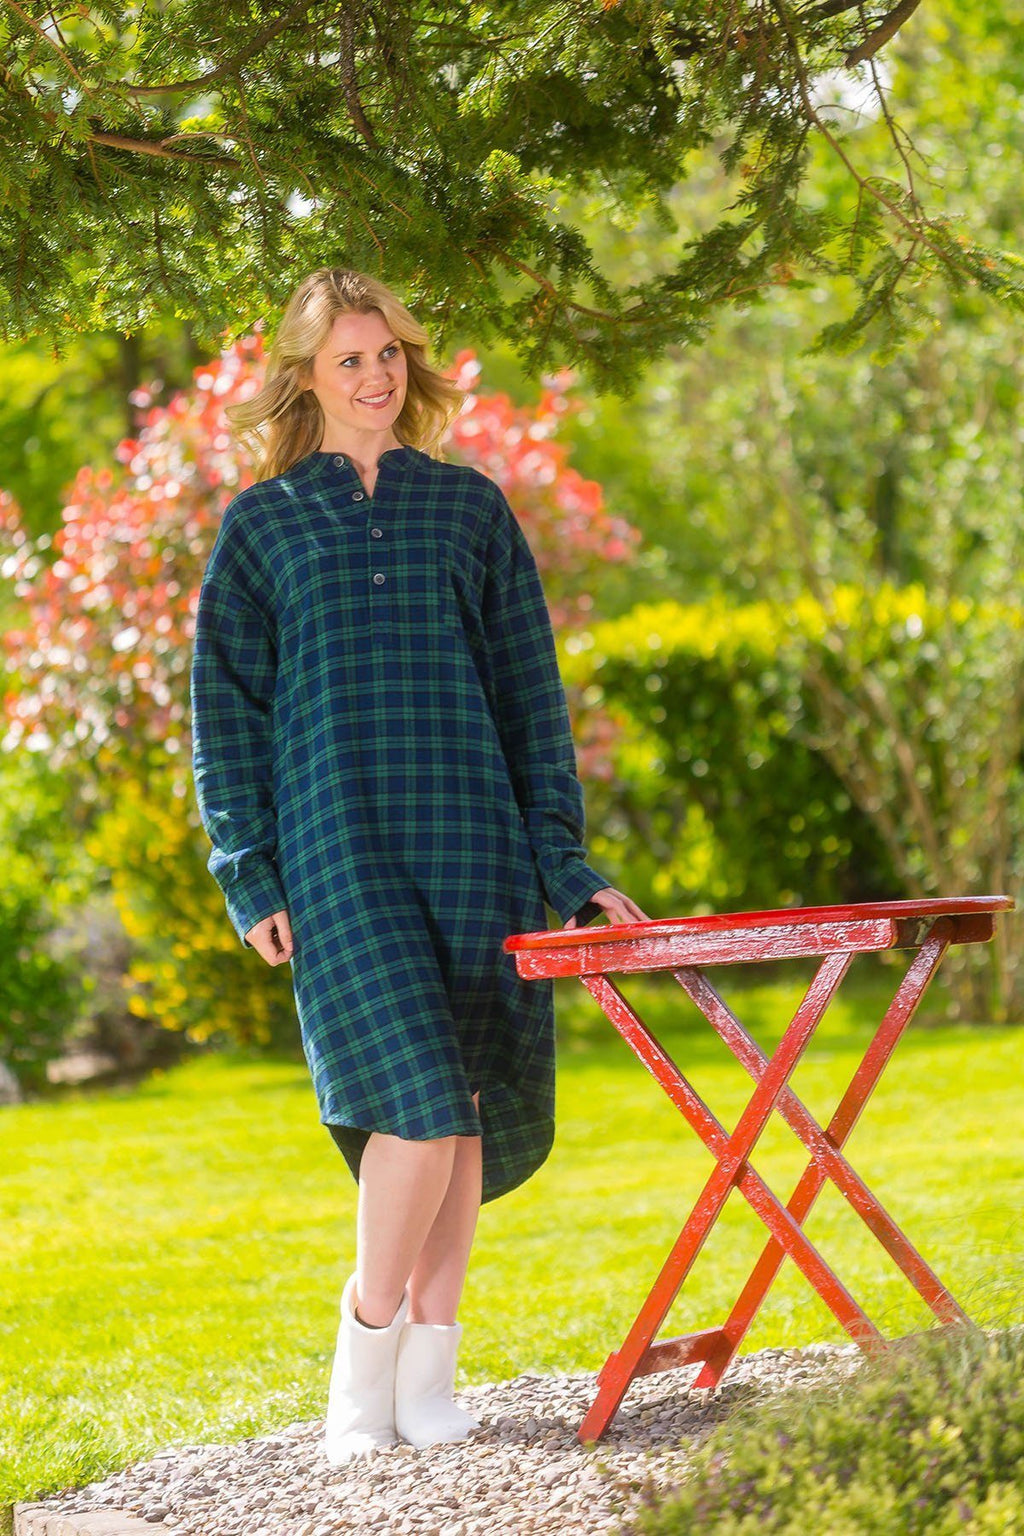 Nightshirt Lee Valley Flannel Ladies - LV6 Green Tartan- Blackwatch Sleepwear Lee Valley Ireland